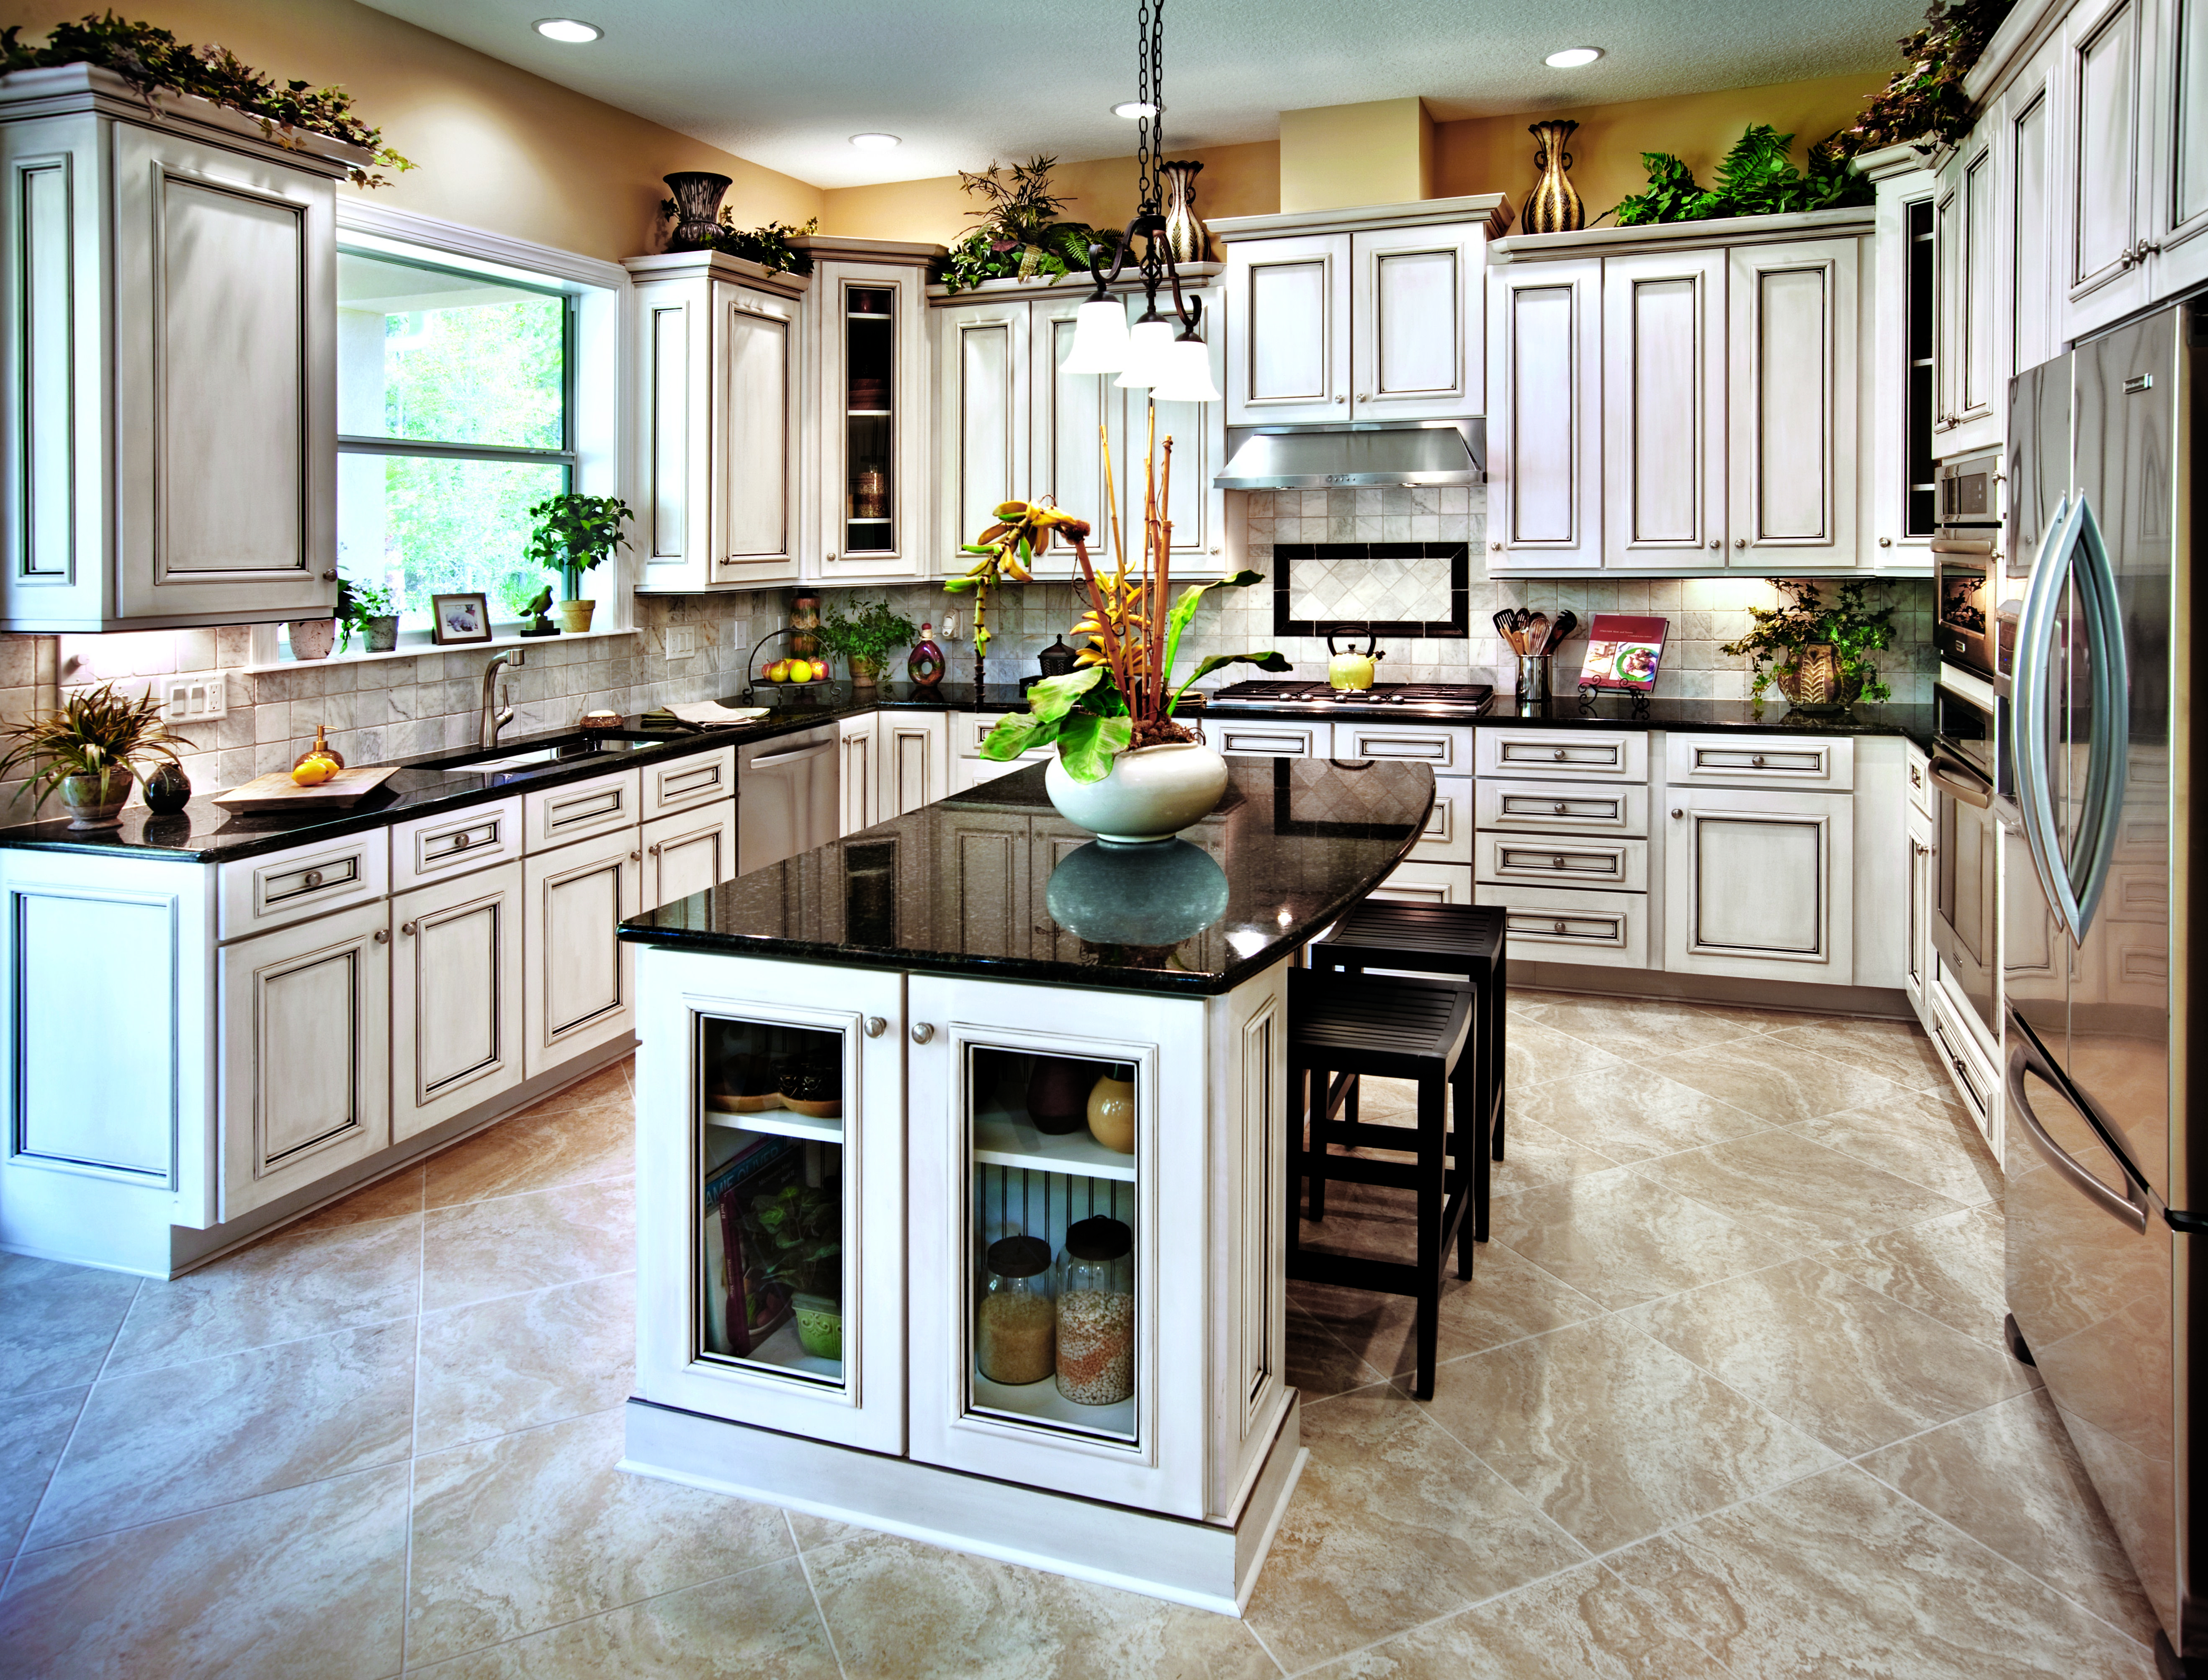 Toll brothers coastal oaks at nocatee fl kitchens for House kitchen model